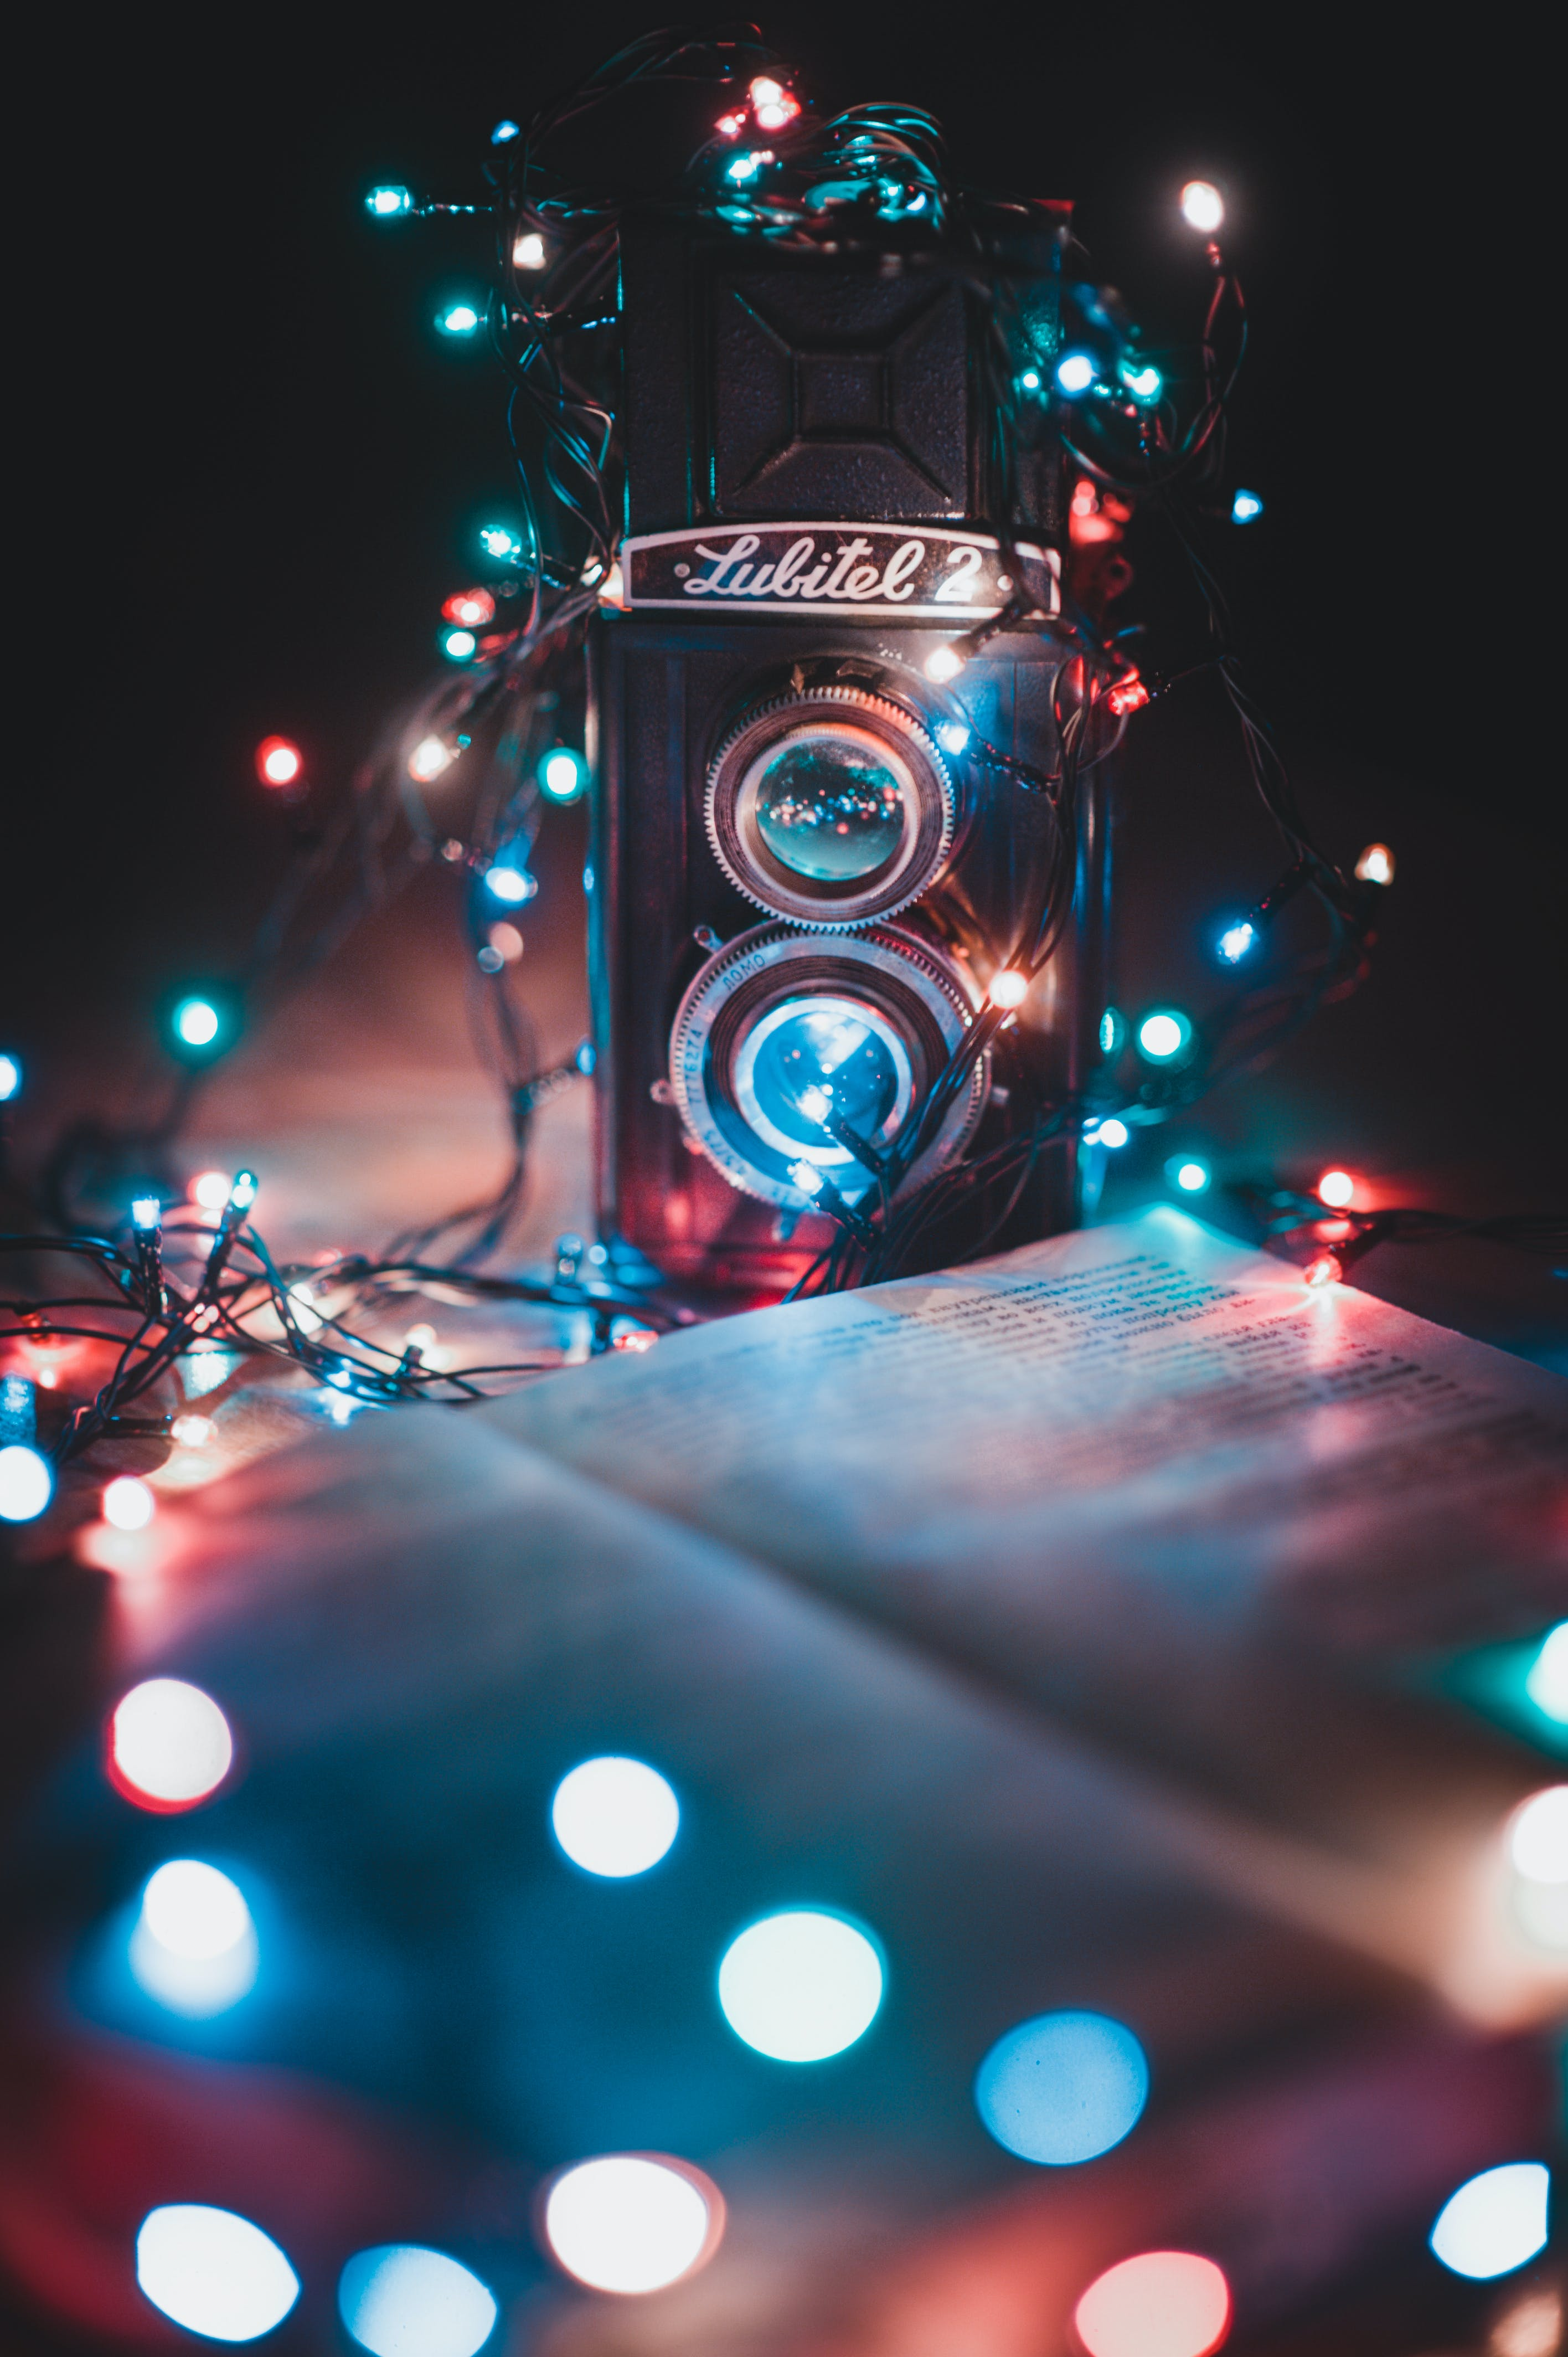 Turned-on String Lights Surrounded the Dual-lens Reflex Camera